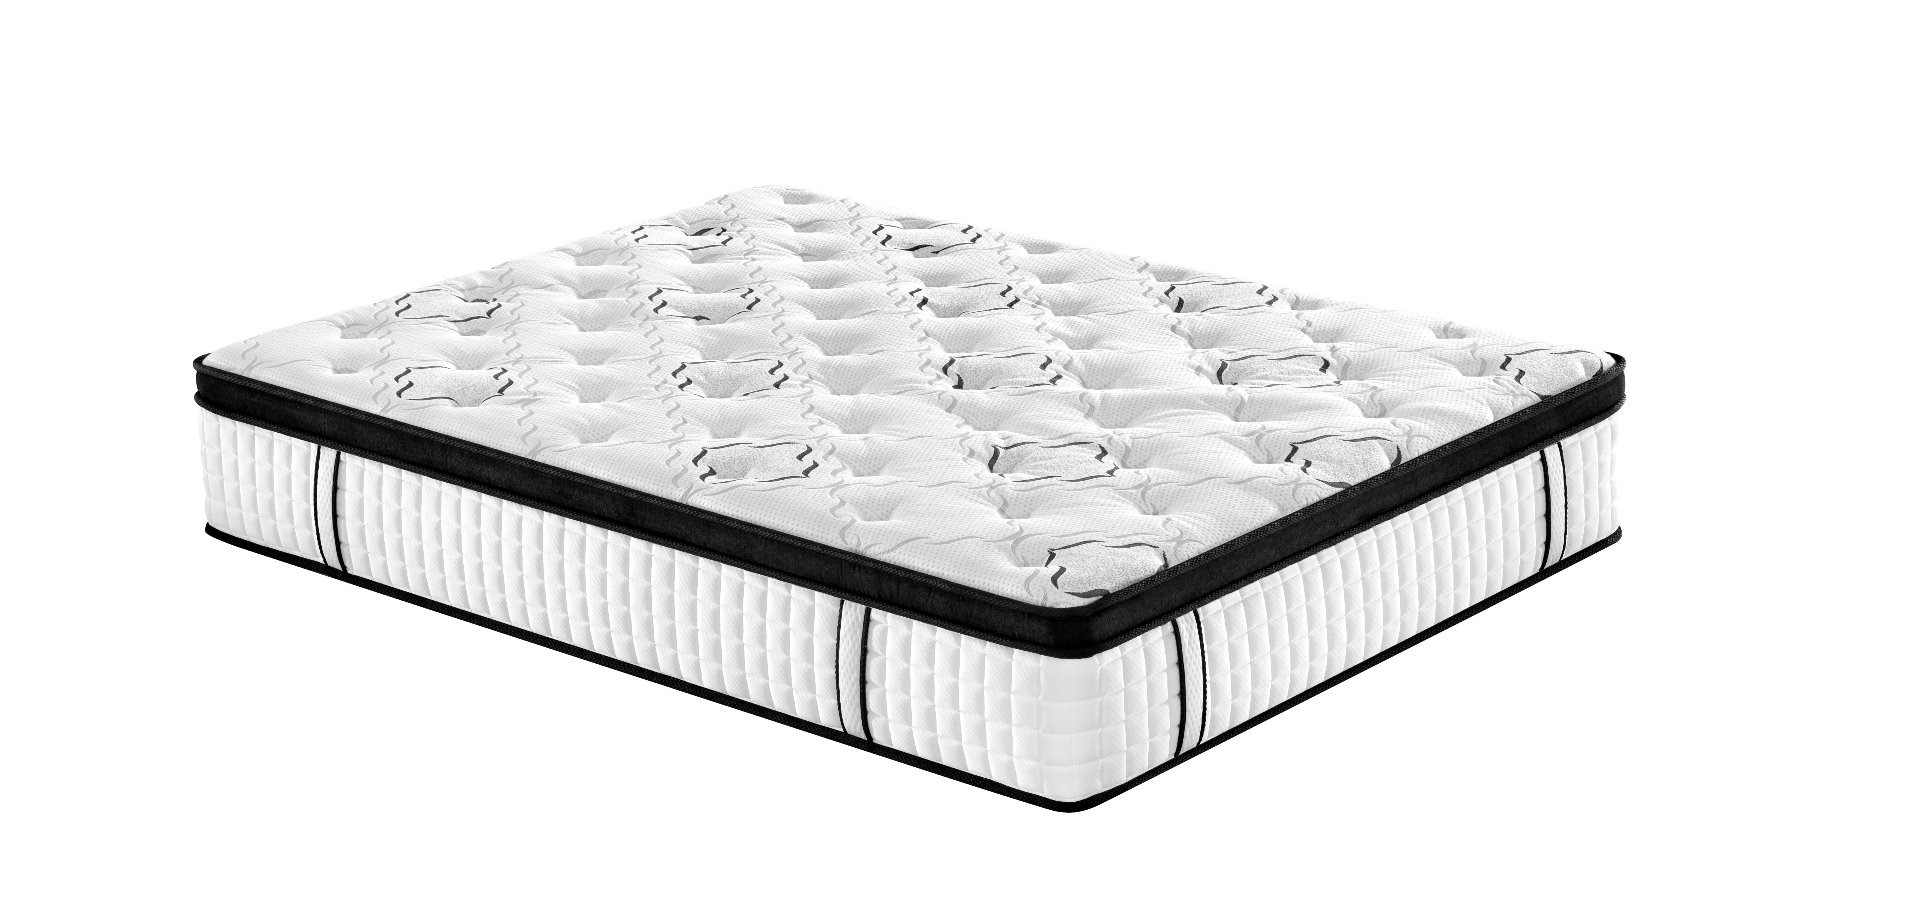 Why is it important to shift to a latex mattress?